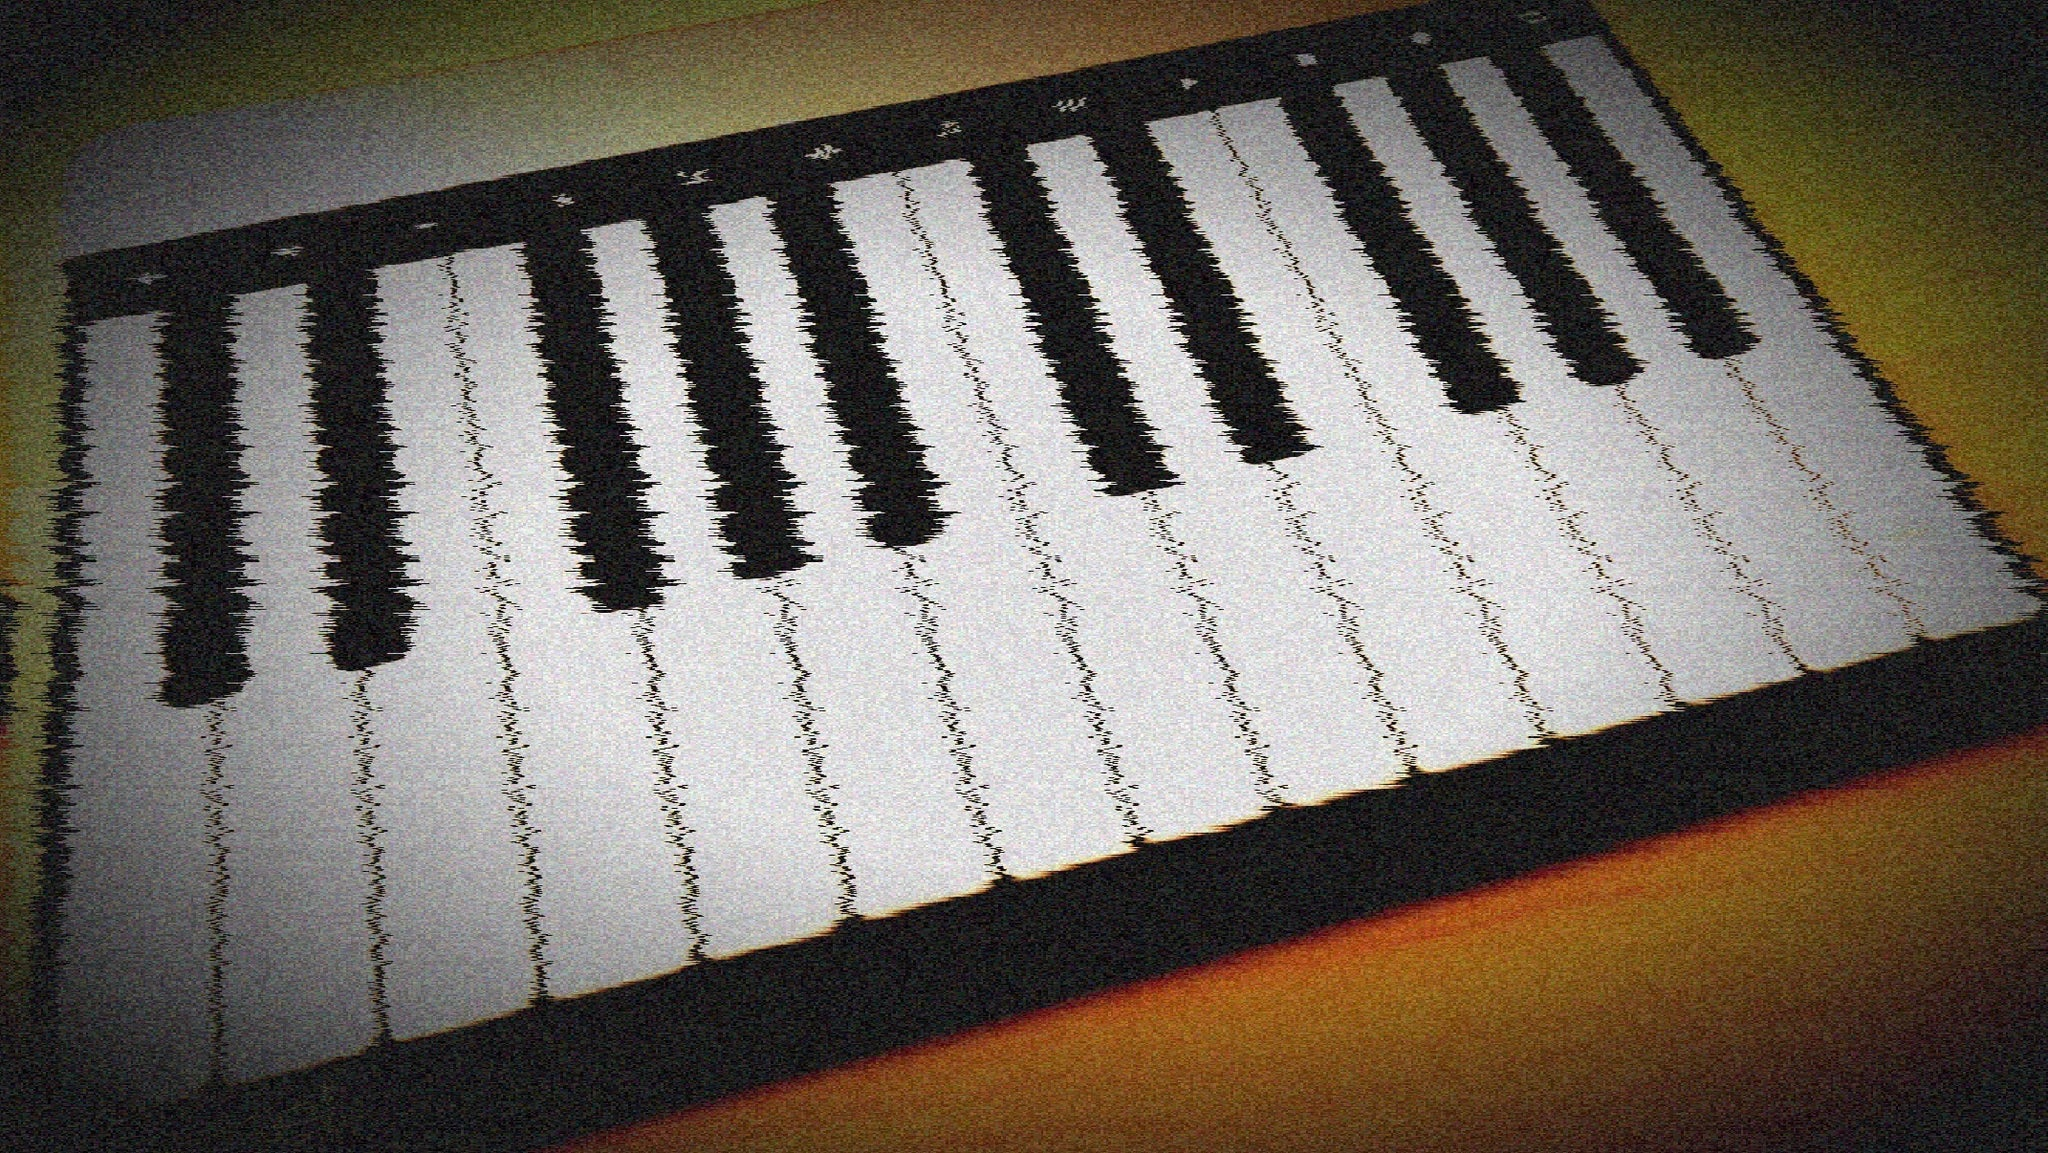 Digital Playing, Analog Feel: Using the Piano Overlay for a Vintage Synth Sound